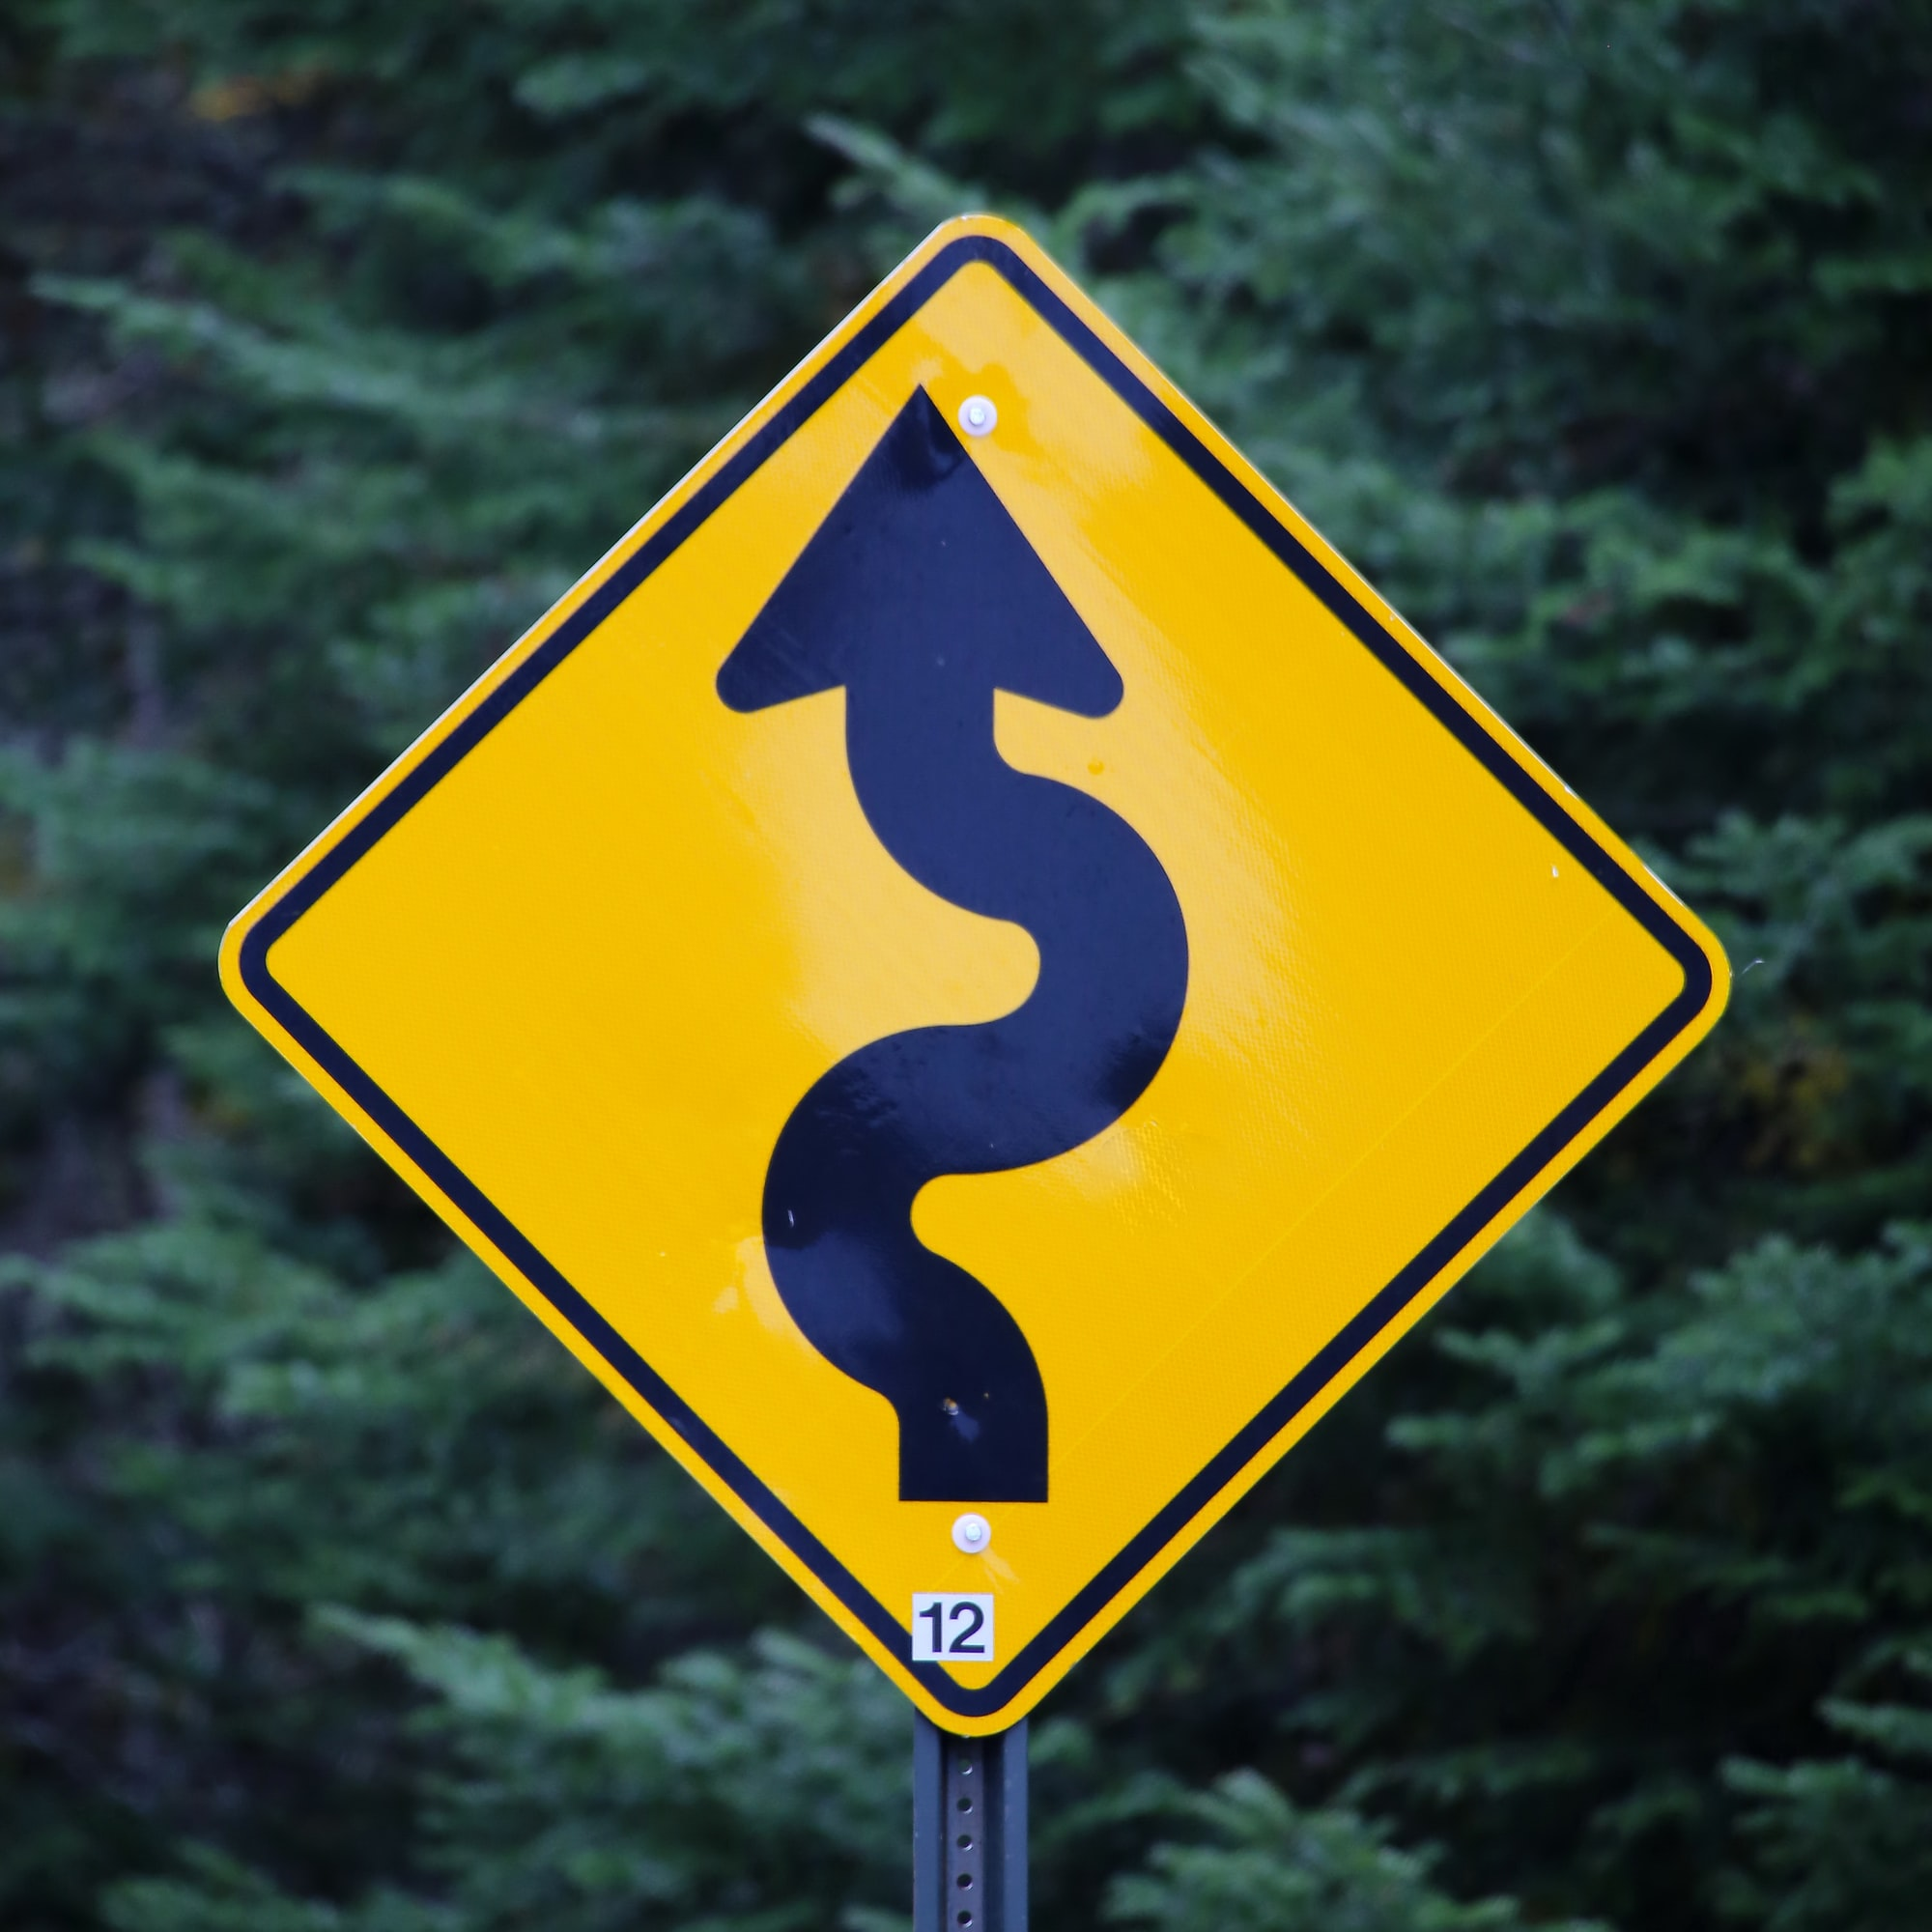 Road sign for curved road ahead.  Storytelling: Could also be used when things are / were not realized in a direct way.